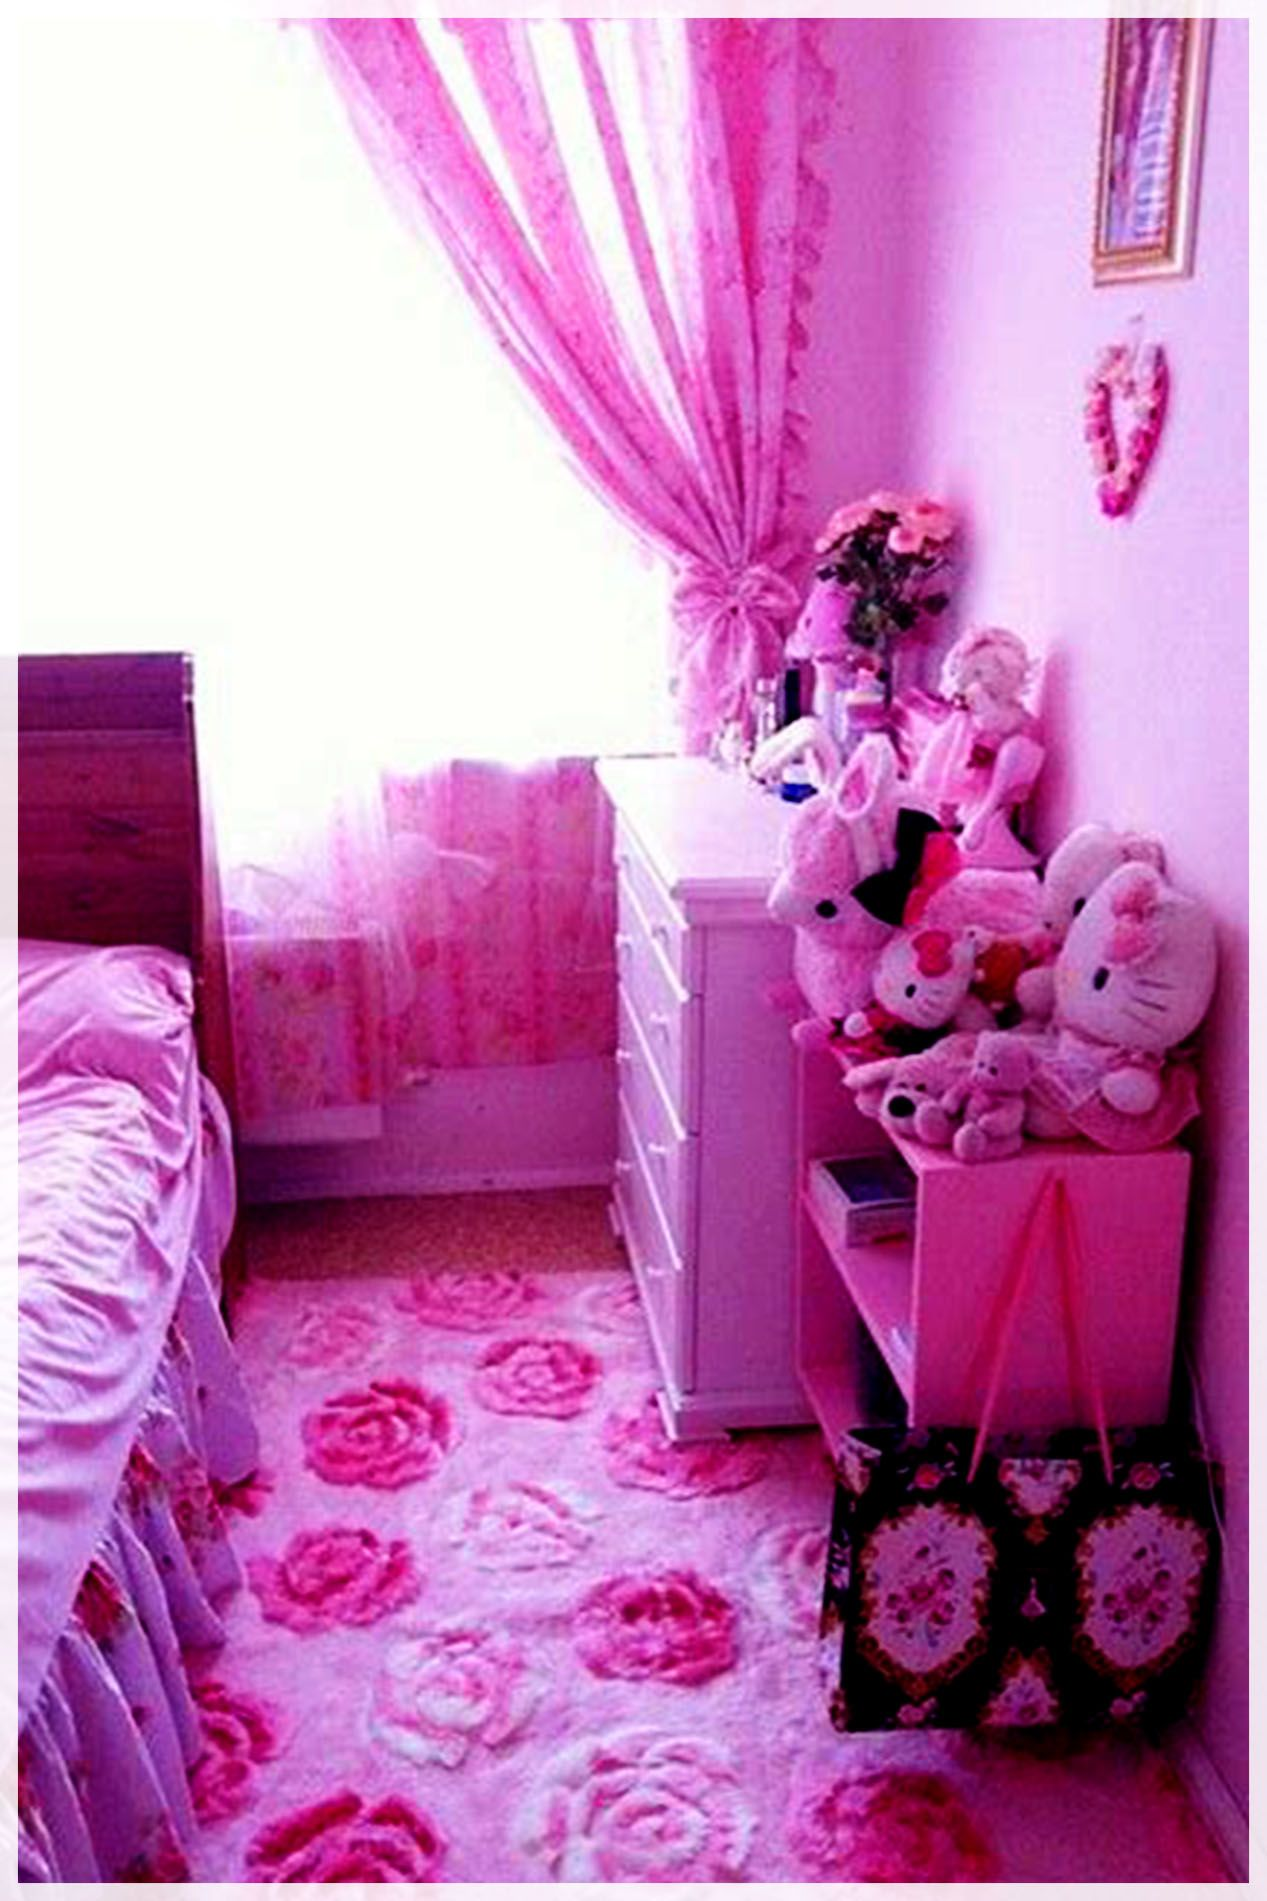 Anime bedroom in truth anime easily resides in the